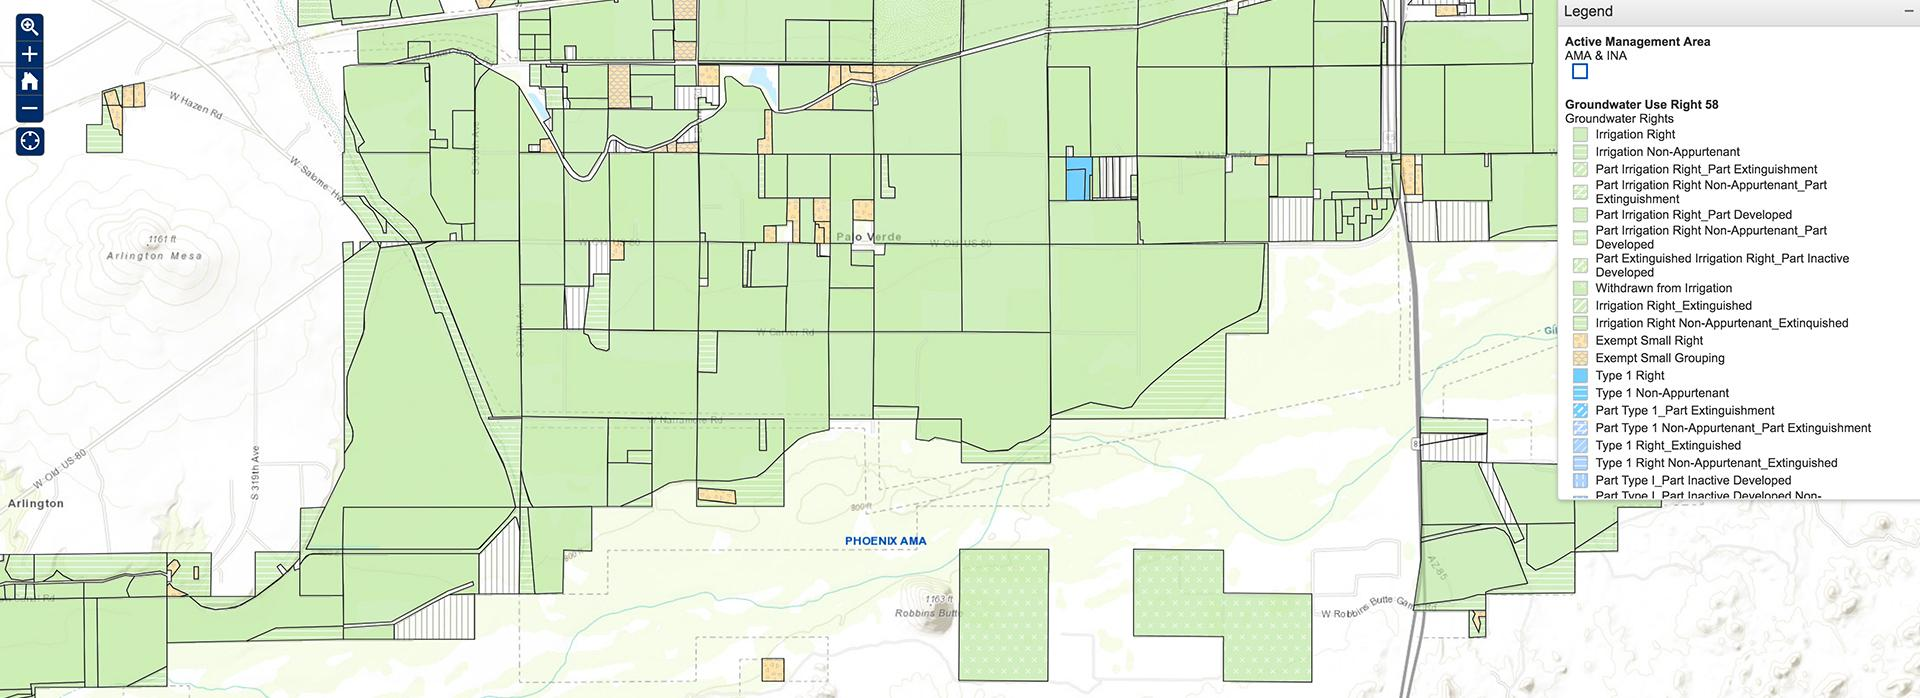 Interactive Map Of Arizona.Adwr To Roll Out New Interactive Groundwater Rights Web Map System